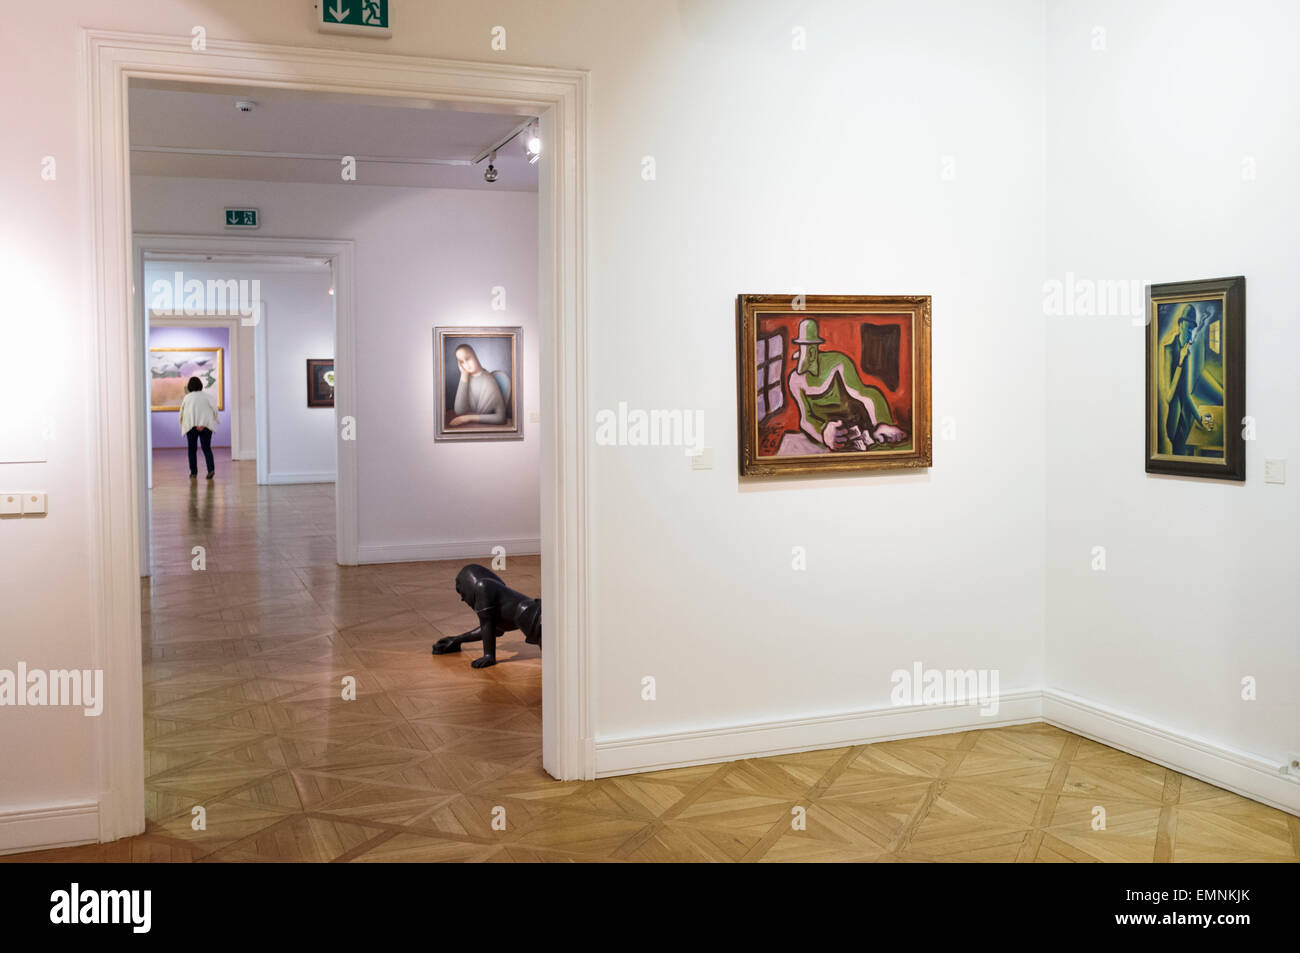 Paintings by Josef Capek at the Moravian Gallery, modern art museum in Brno, Czech Republic - Stock Image